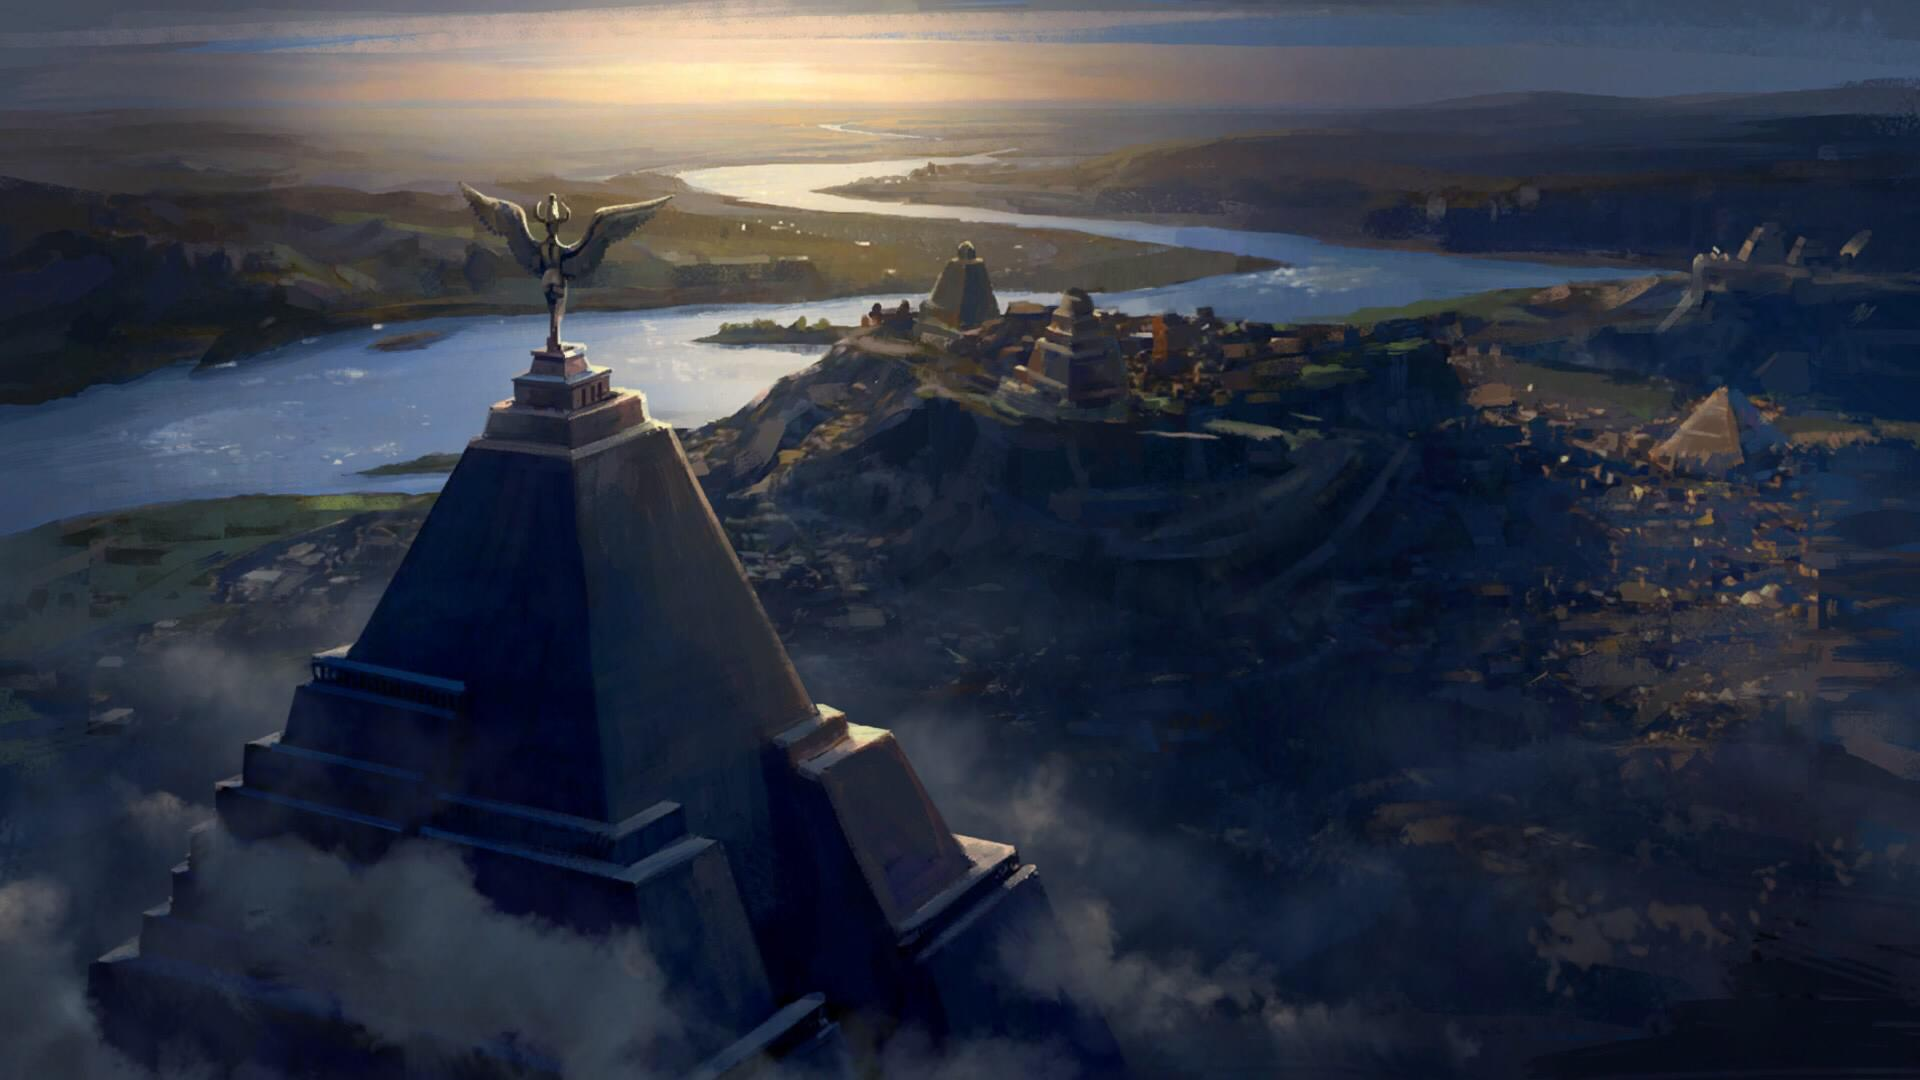 Nomad Iphone X Wallpaper Meereen City Concept Art Pyramids Game Of Thrones